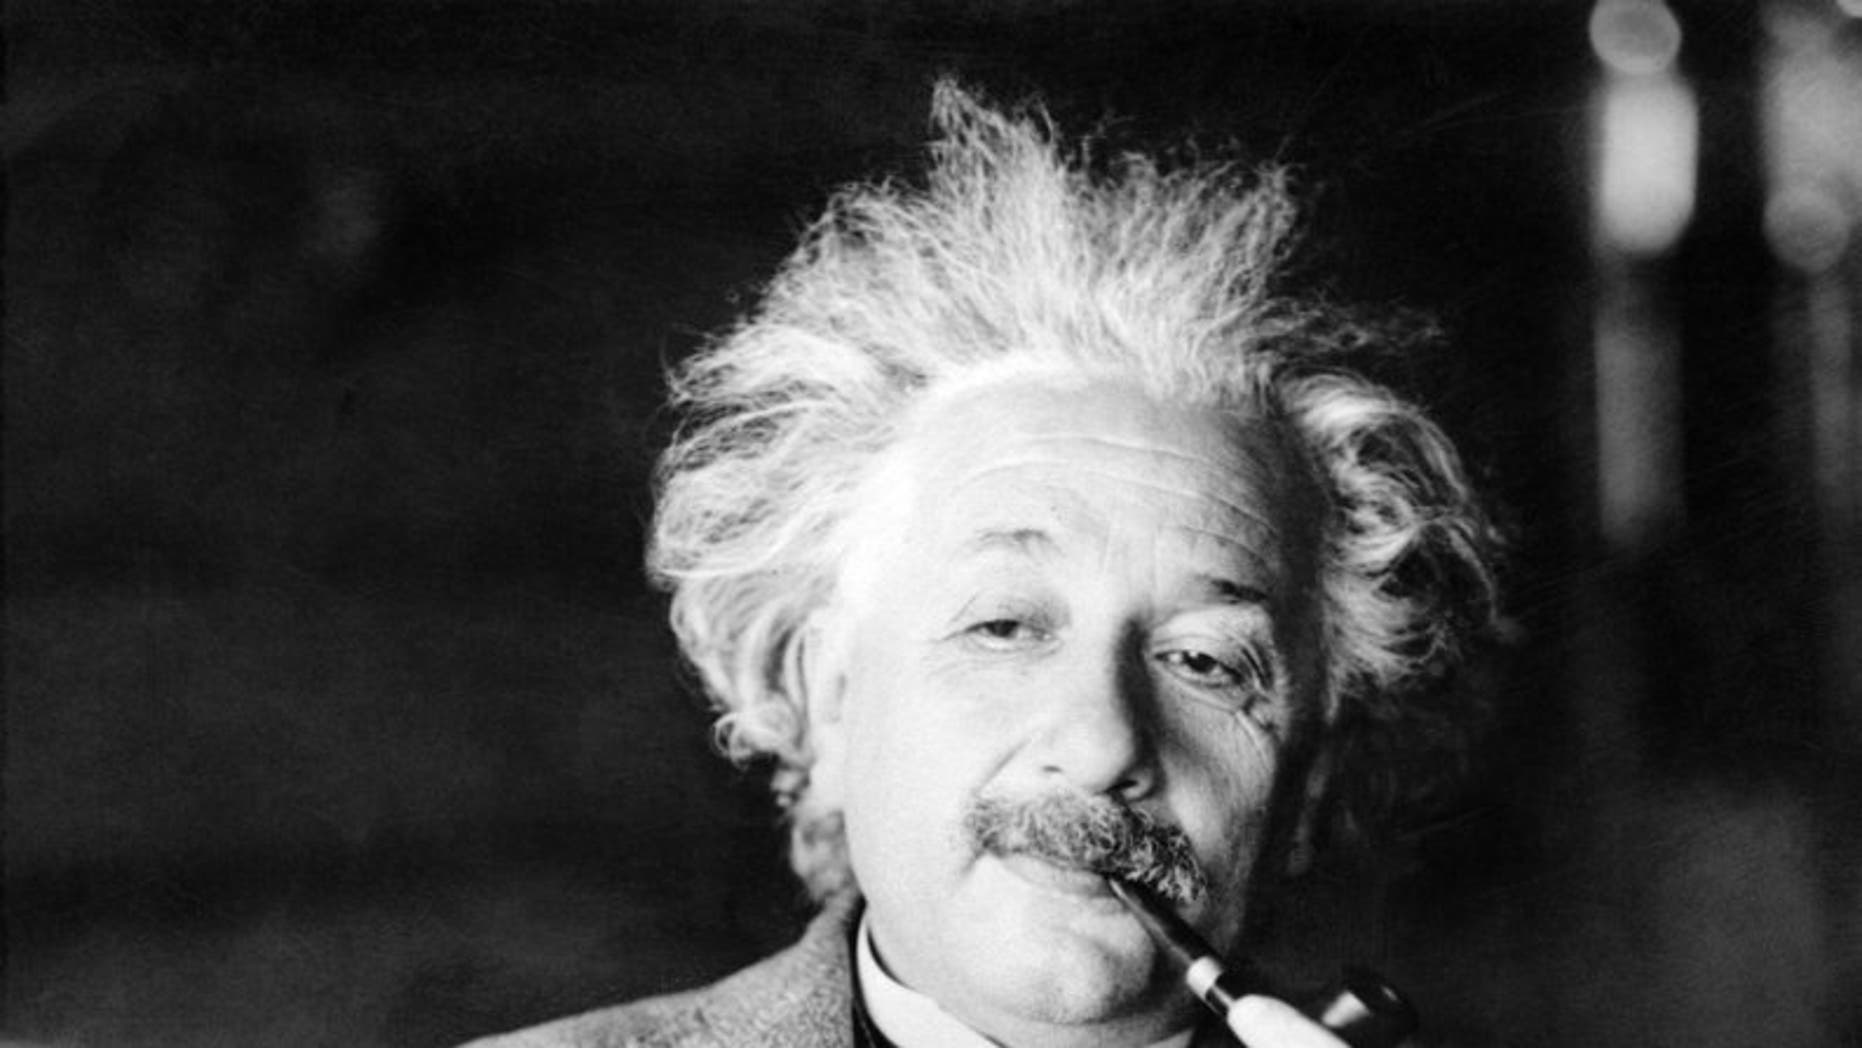 Albert Einstein's handwritten note to a bellboy while traveling in Japan in 1922 fetched $1.56 million at a Jerusalem auction, The Winner auction house said.